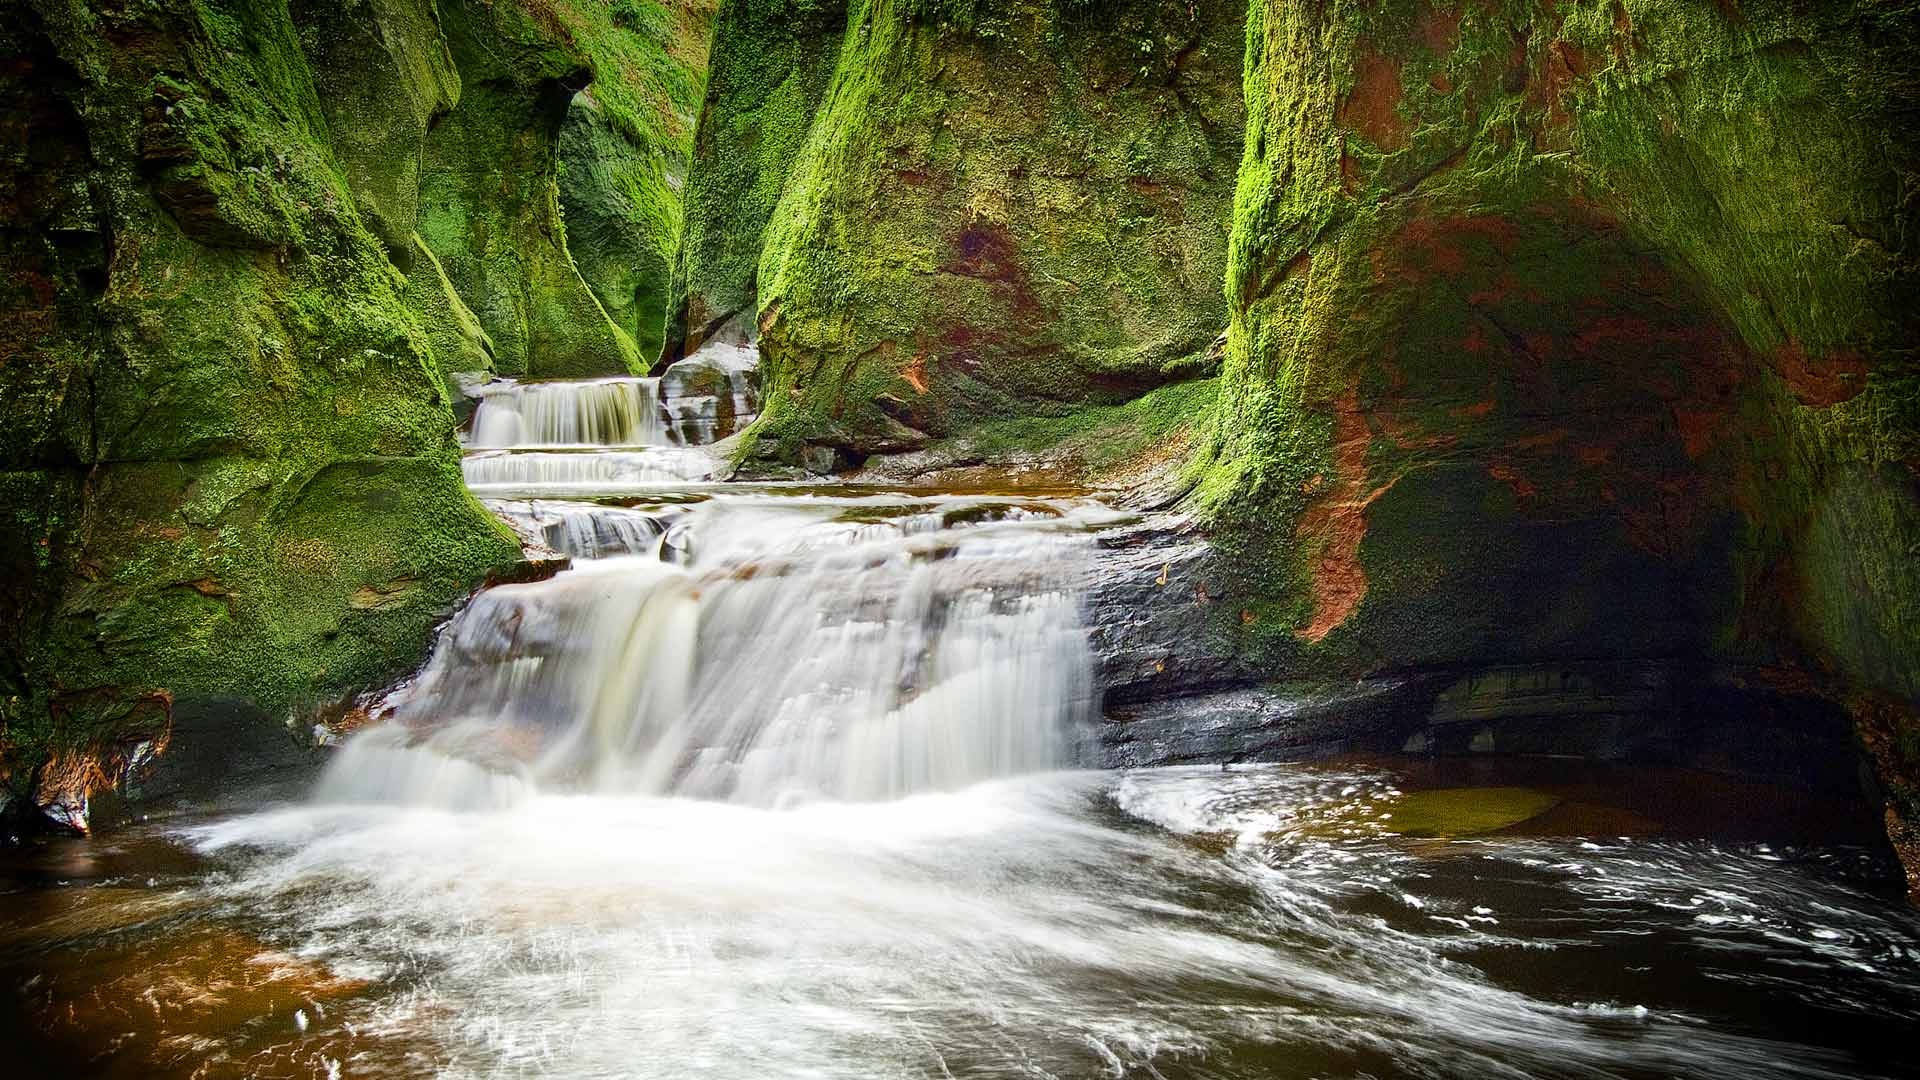 Finnich Glen in Stirlingshire, Scotland (© Damian Shields/Offset)